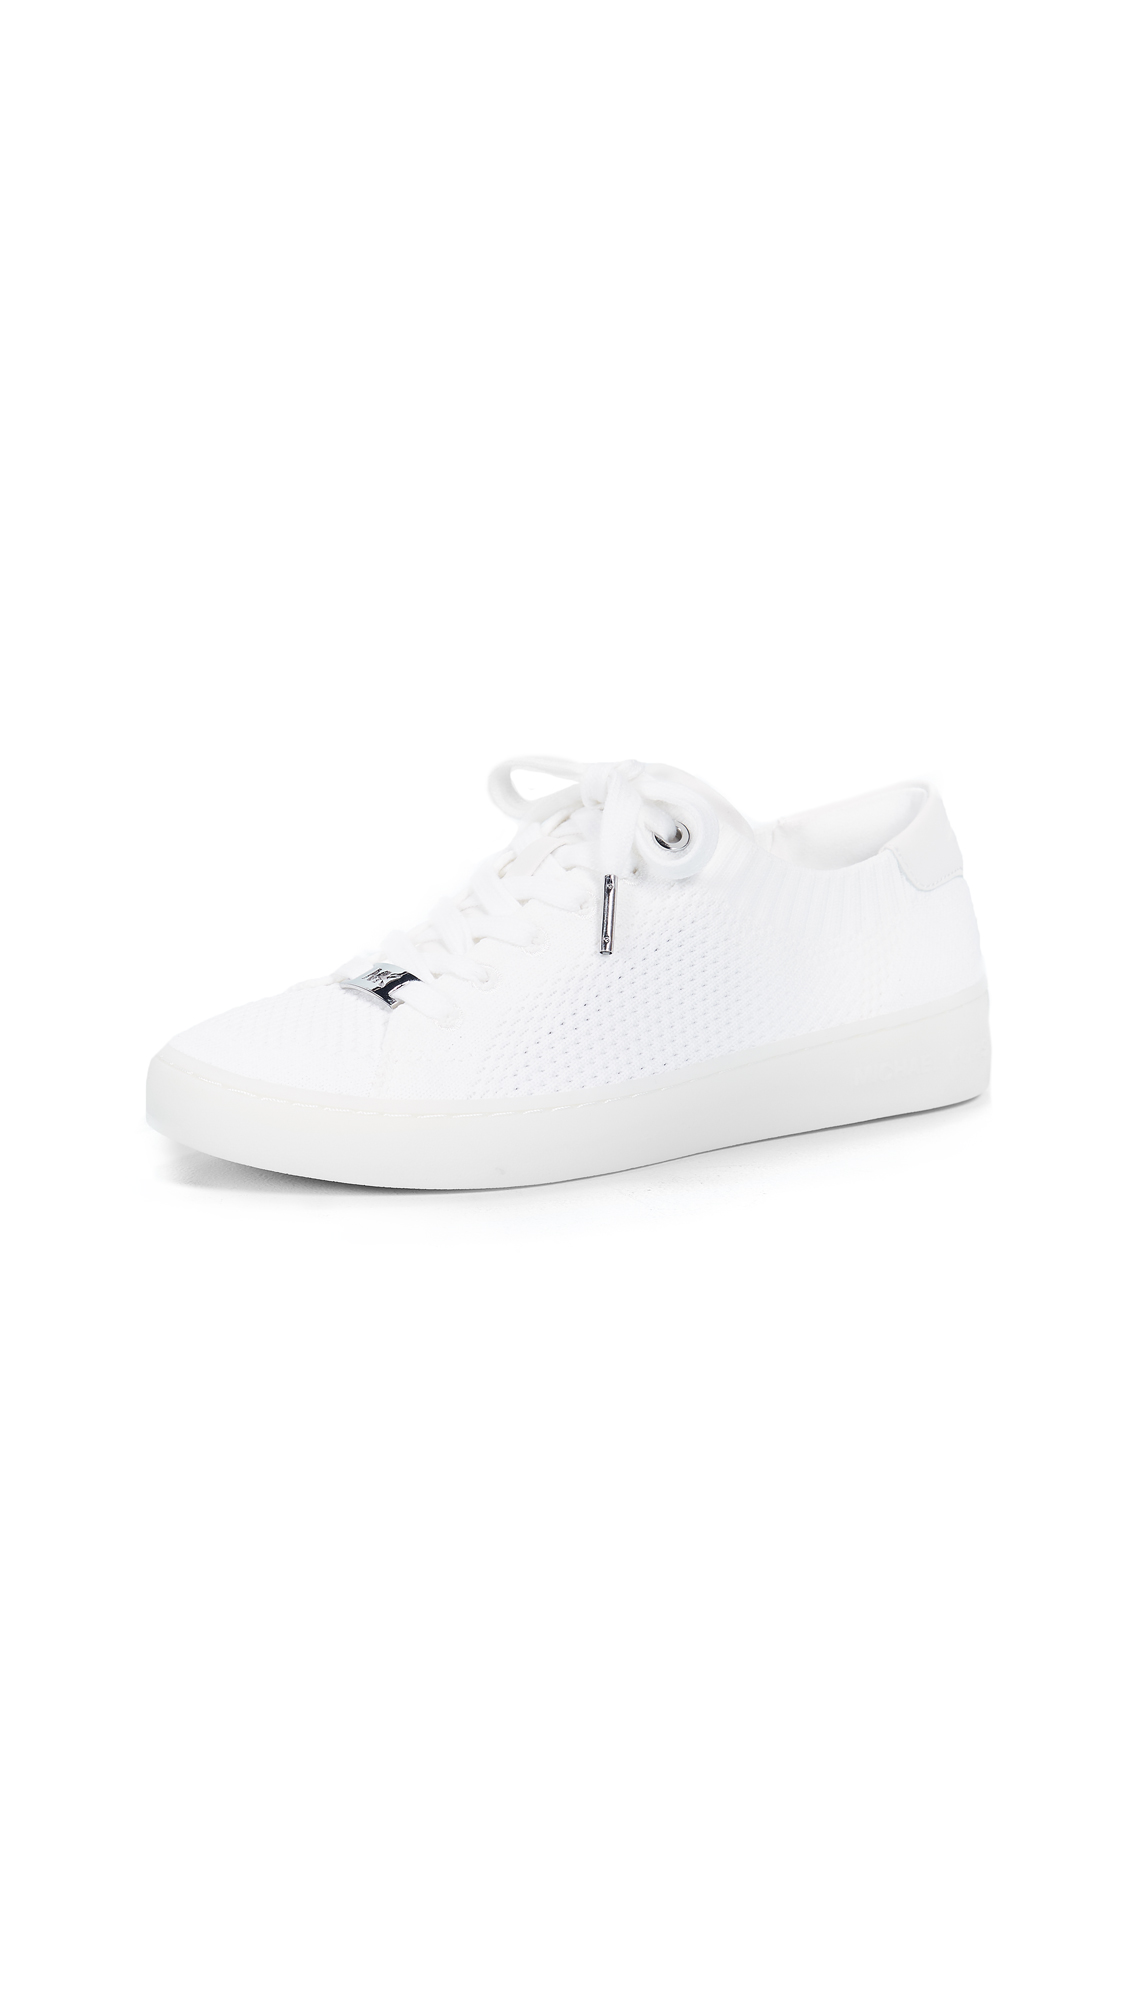 MICHAEL Michael Kors Skyler Sneakers - Optic White